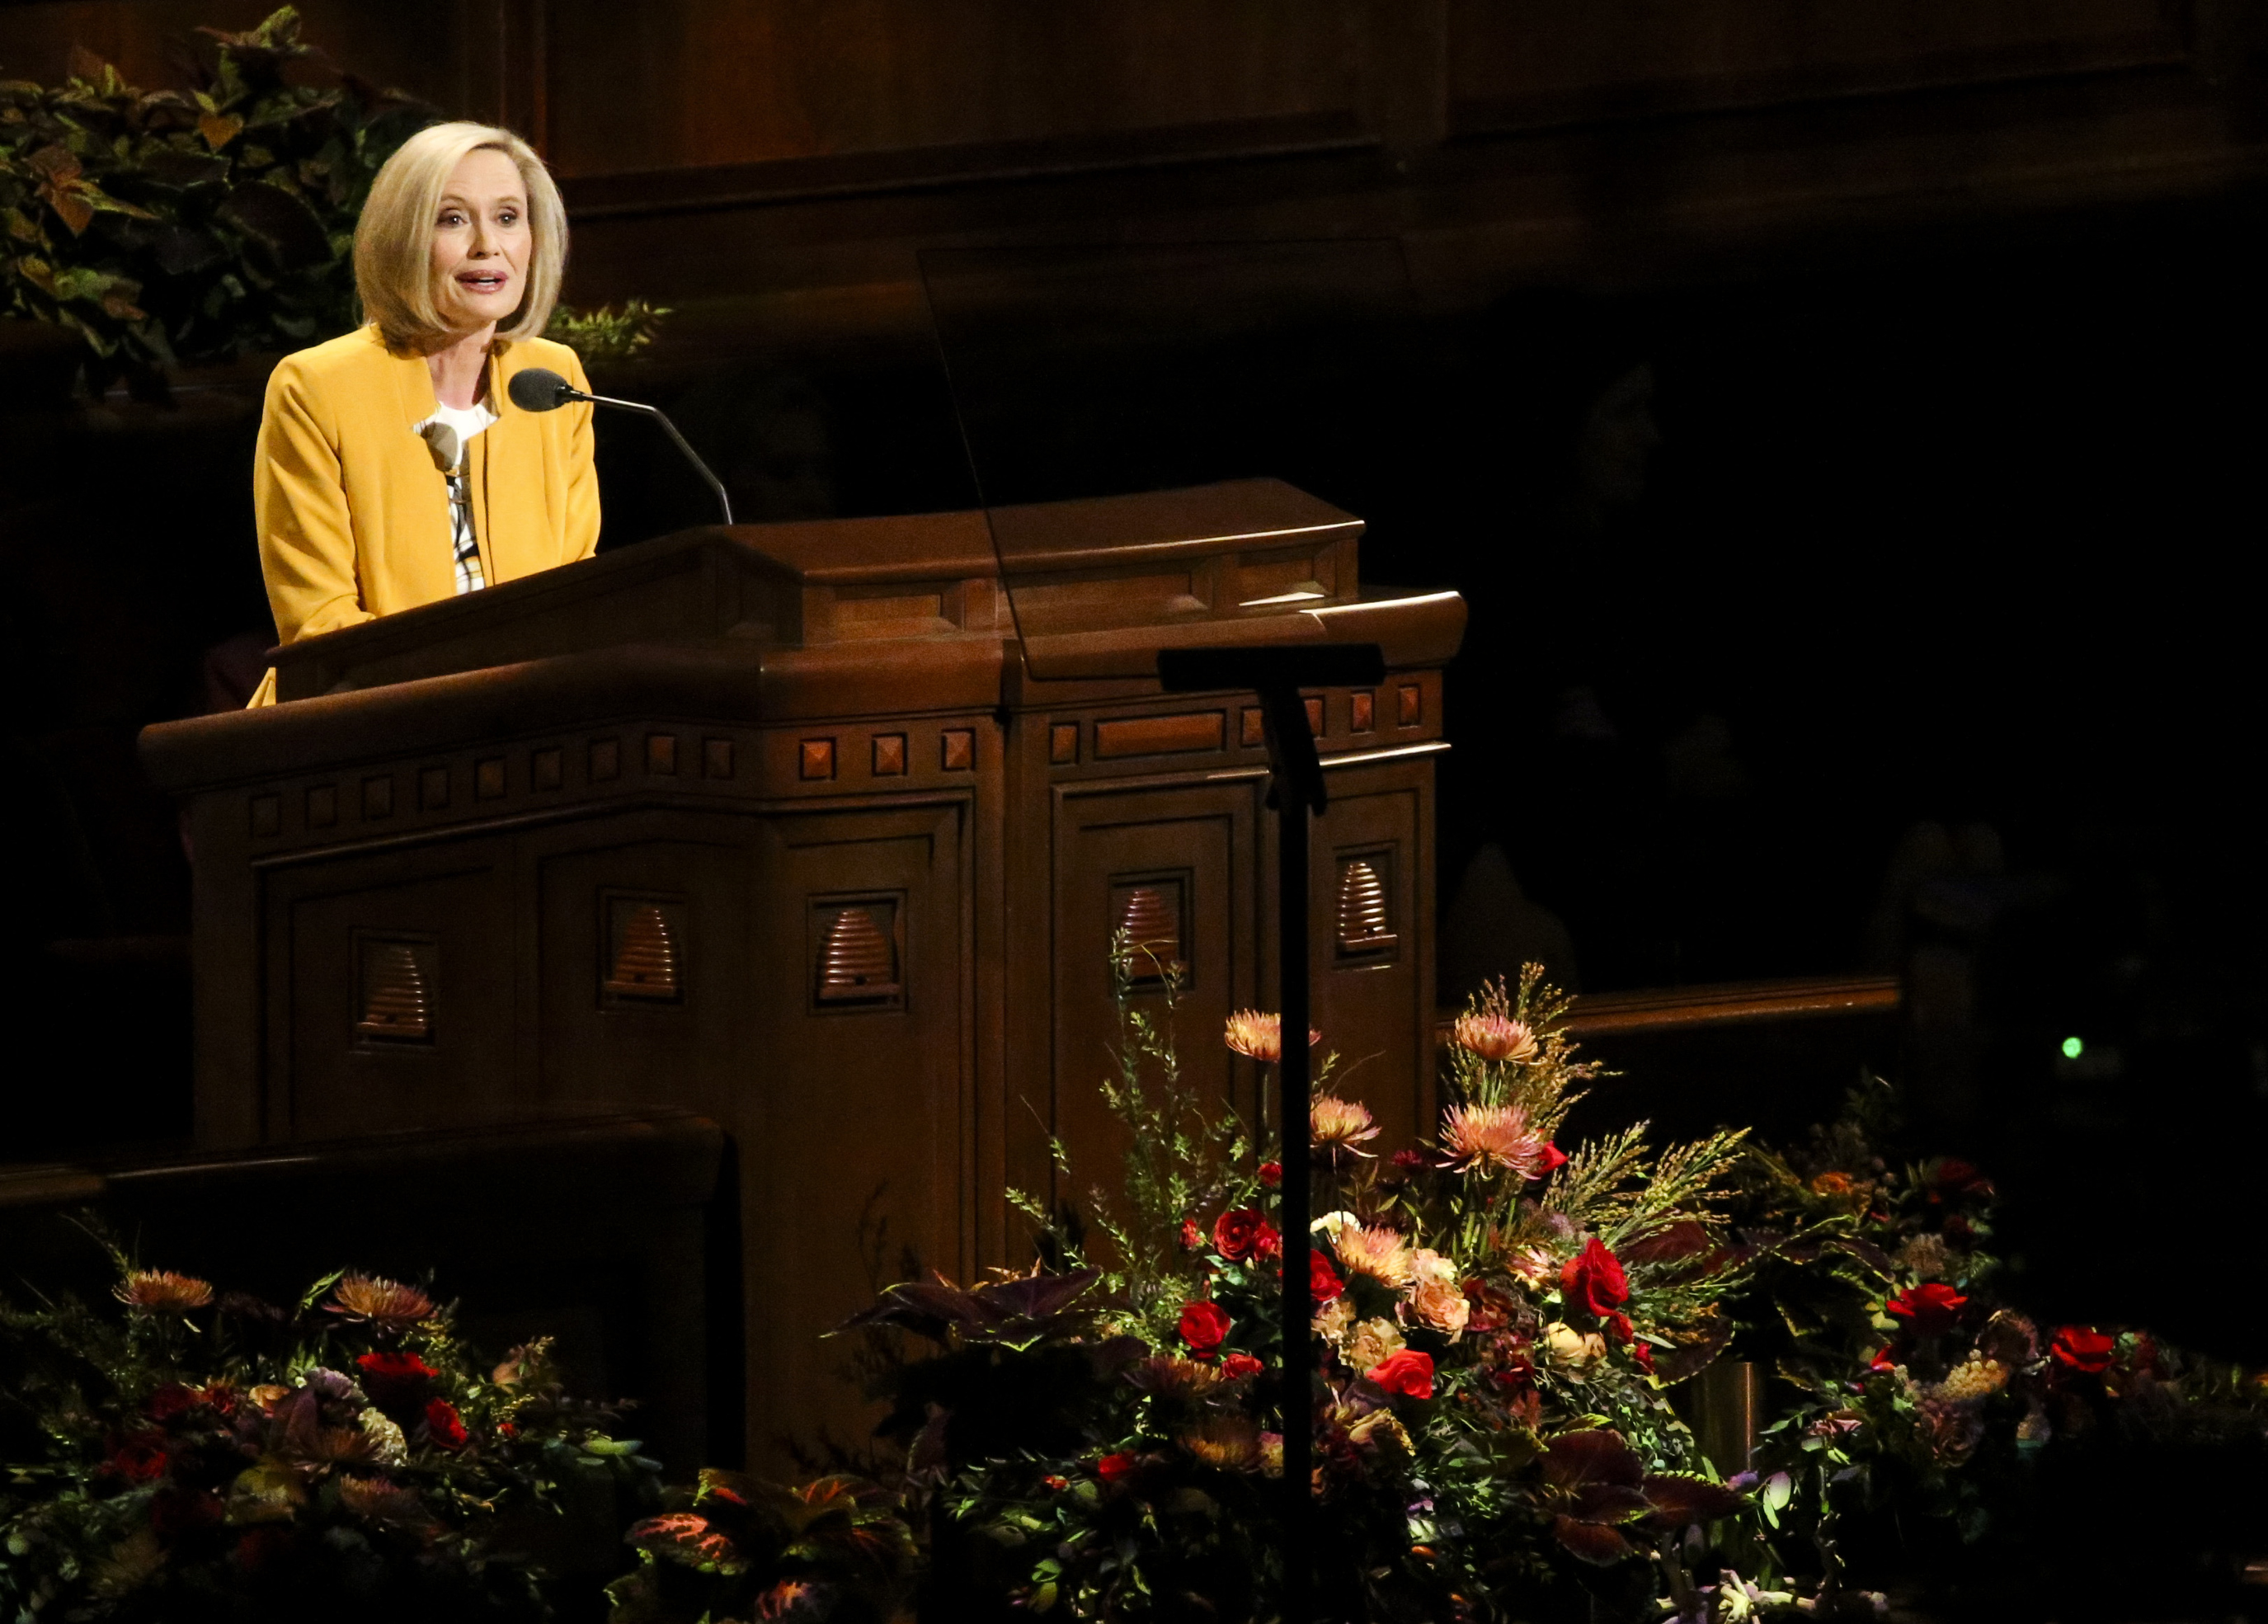 Sister Bonnie H. Cordon, Young Women general president, speaks during the women's session of the 189th Semiannual General Conference of The Church of Jesus Christ of Latter-day Saints at the Conference Center in Salt Lake City on Saturday, Oct. 5, 2019.